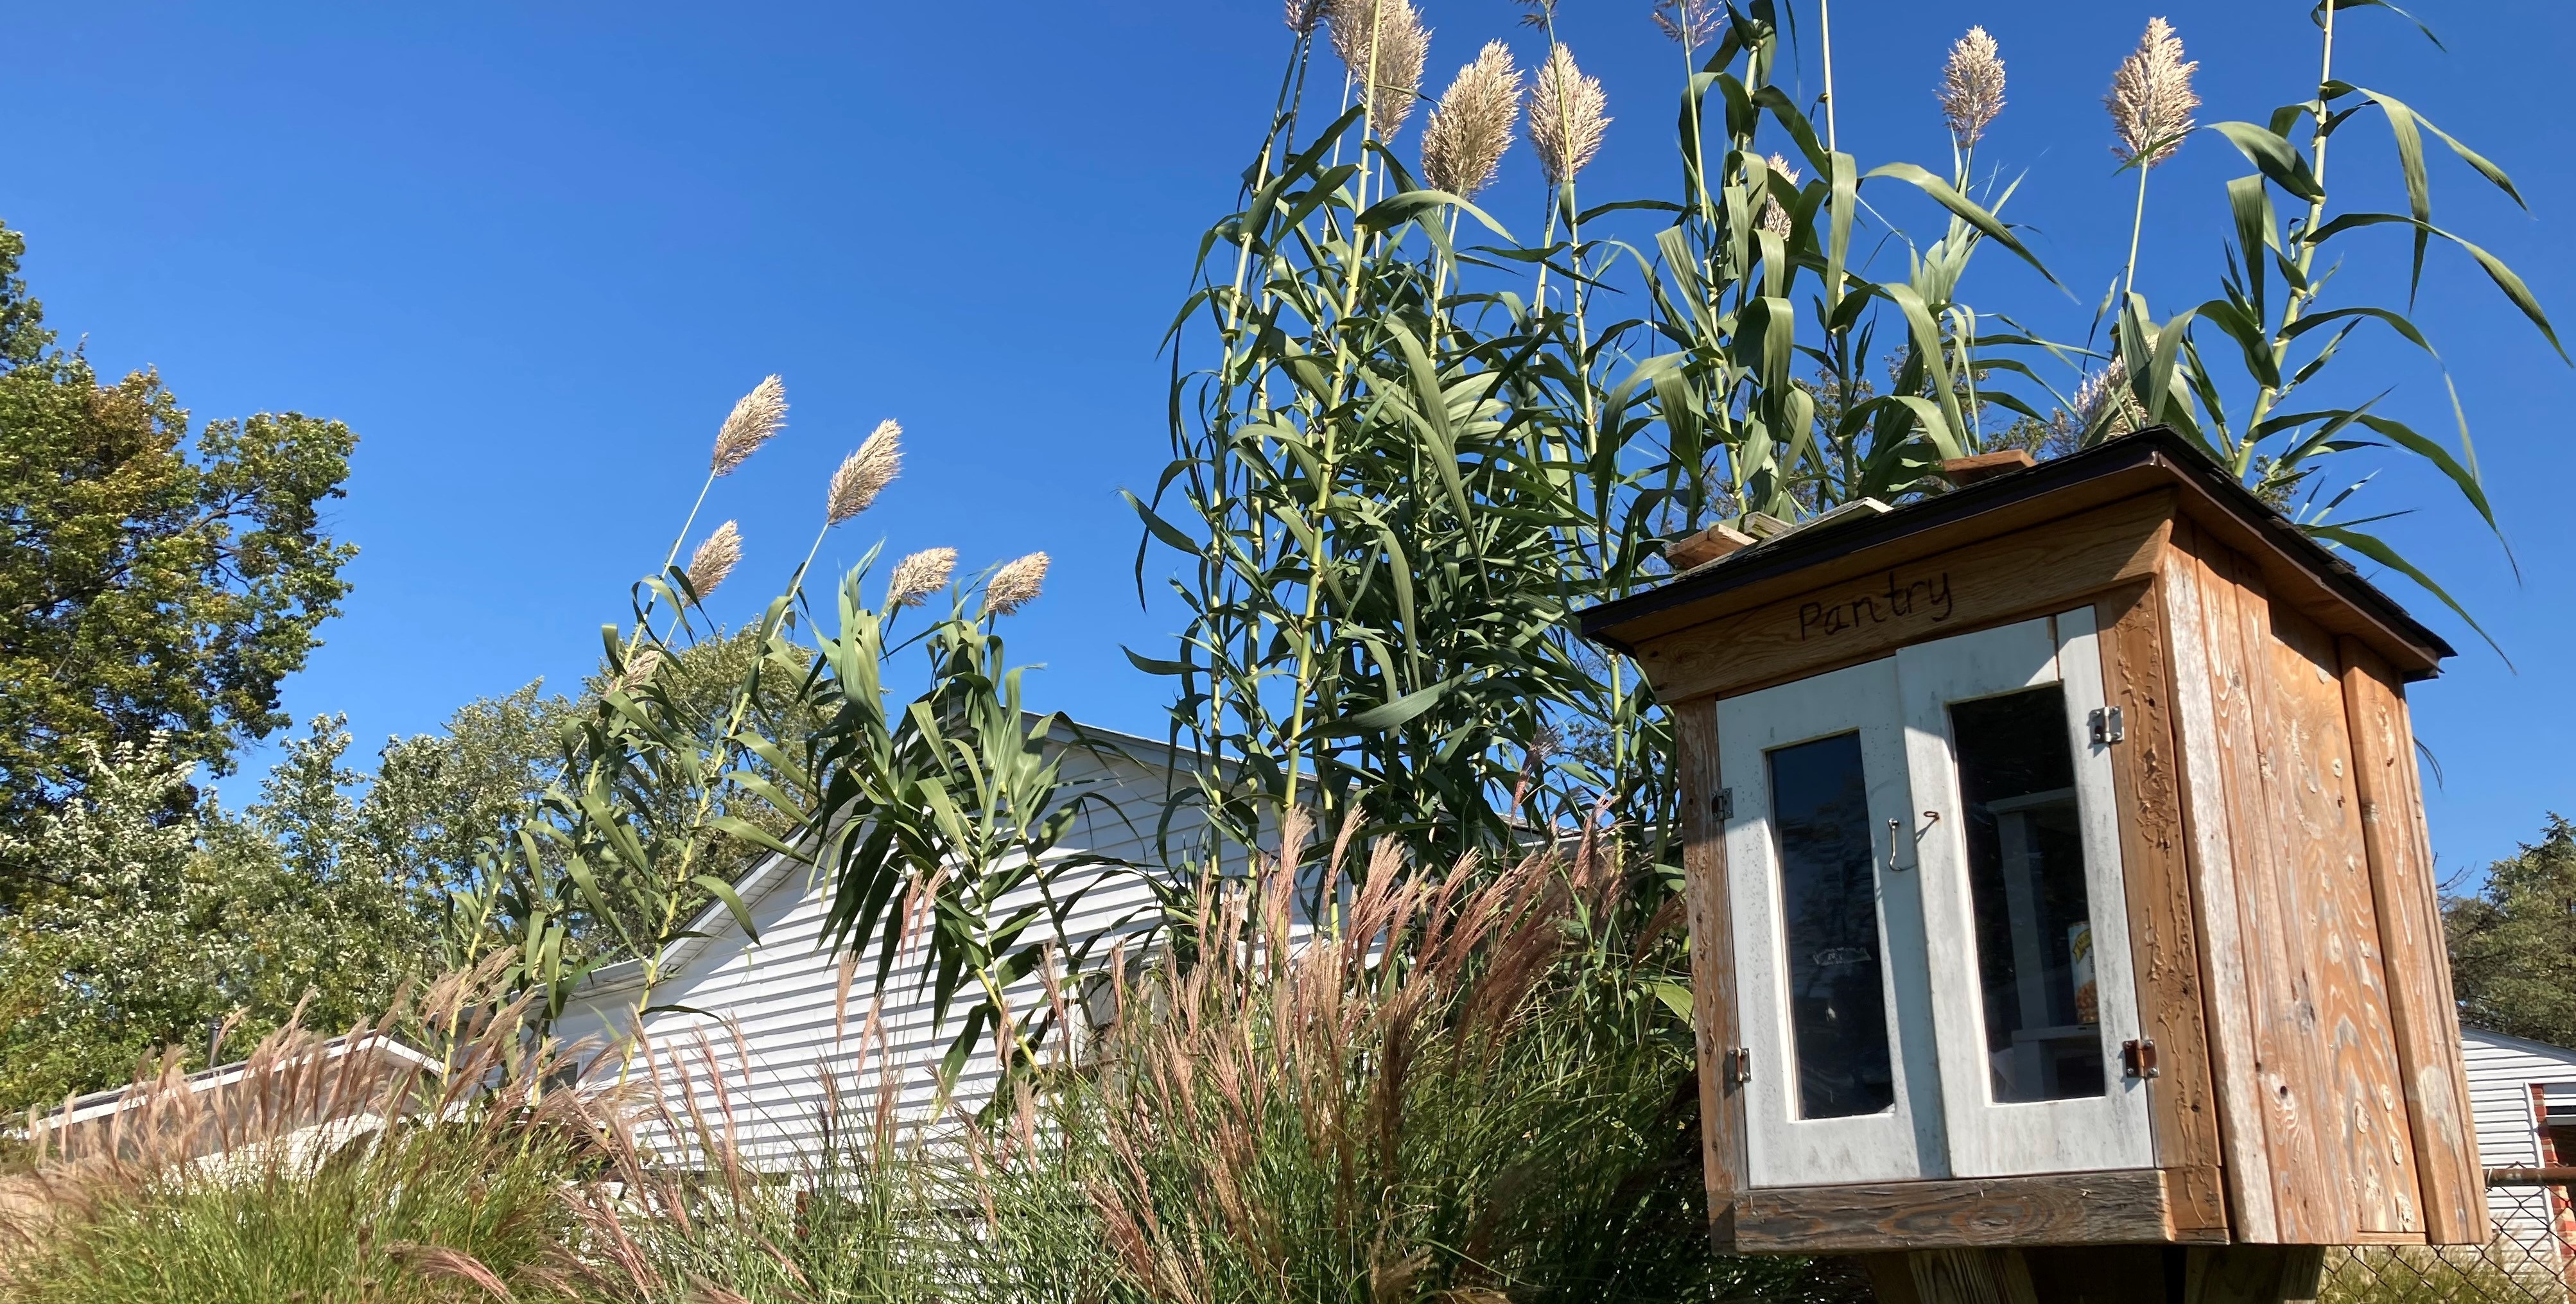 Fall ornamental grasses decorate the Case Rd. Community Garden near the free Little Pantry.